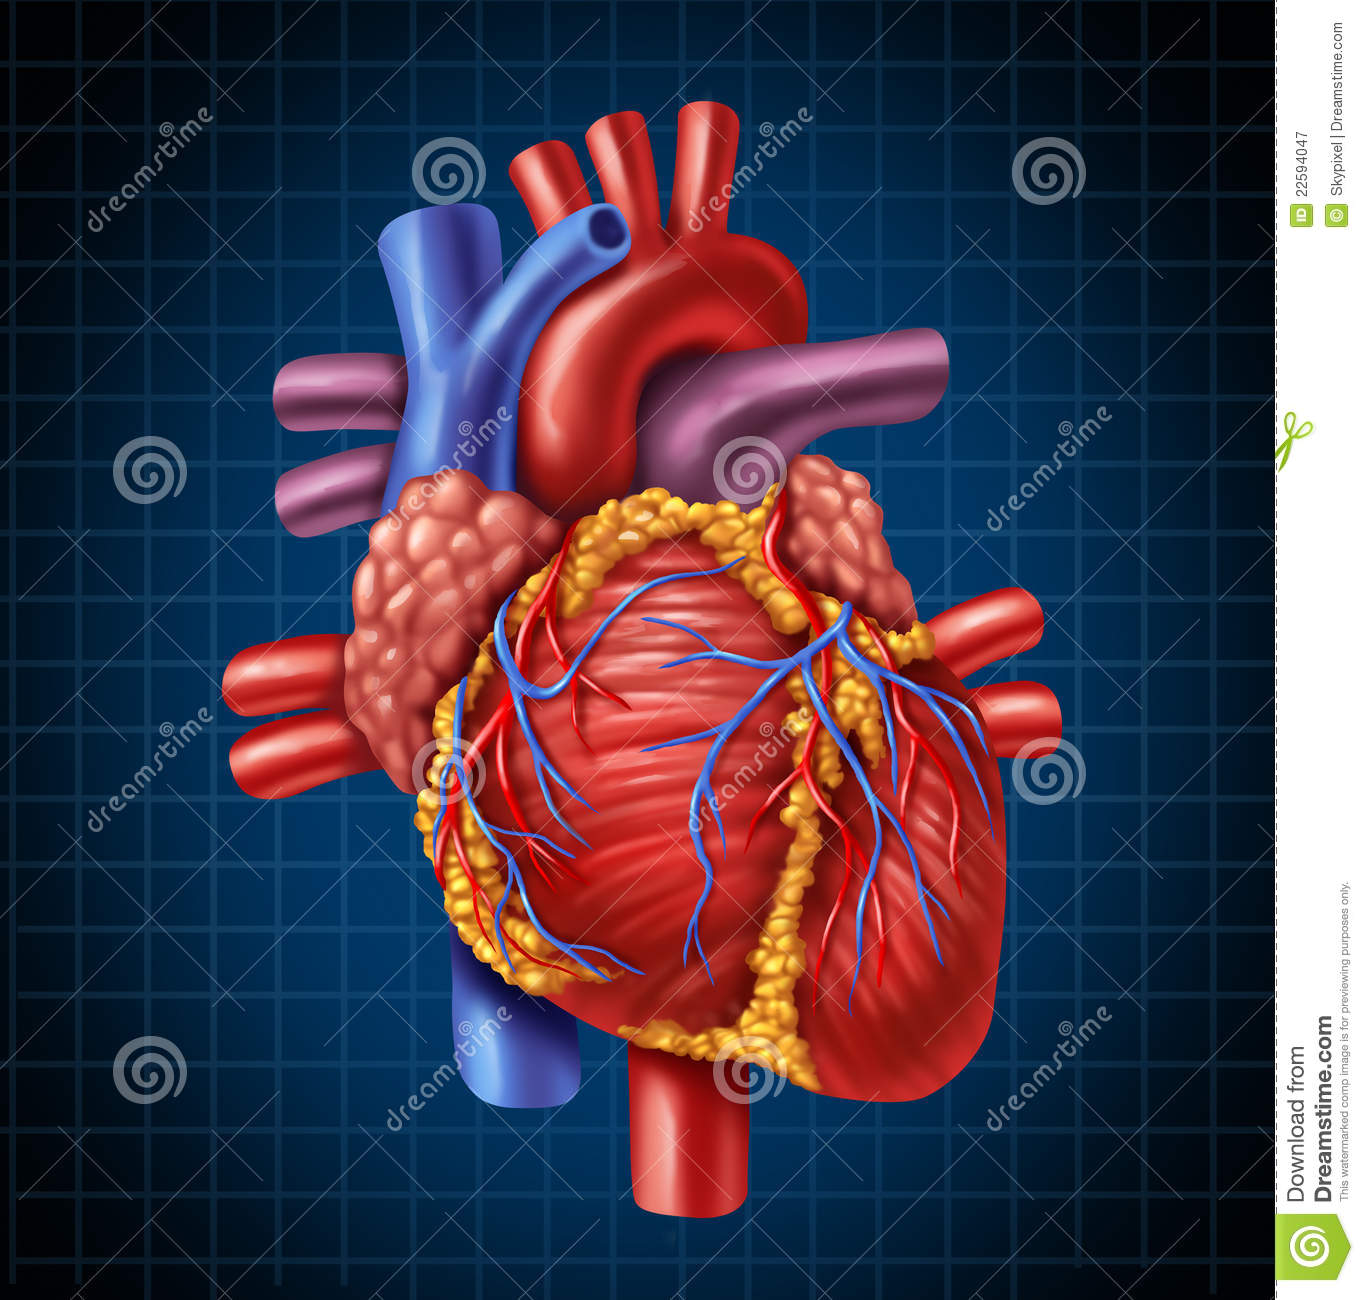 Human Heart Anatomy stock illustration. Illustration of chart - 22594047